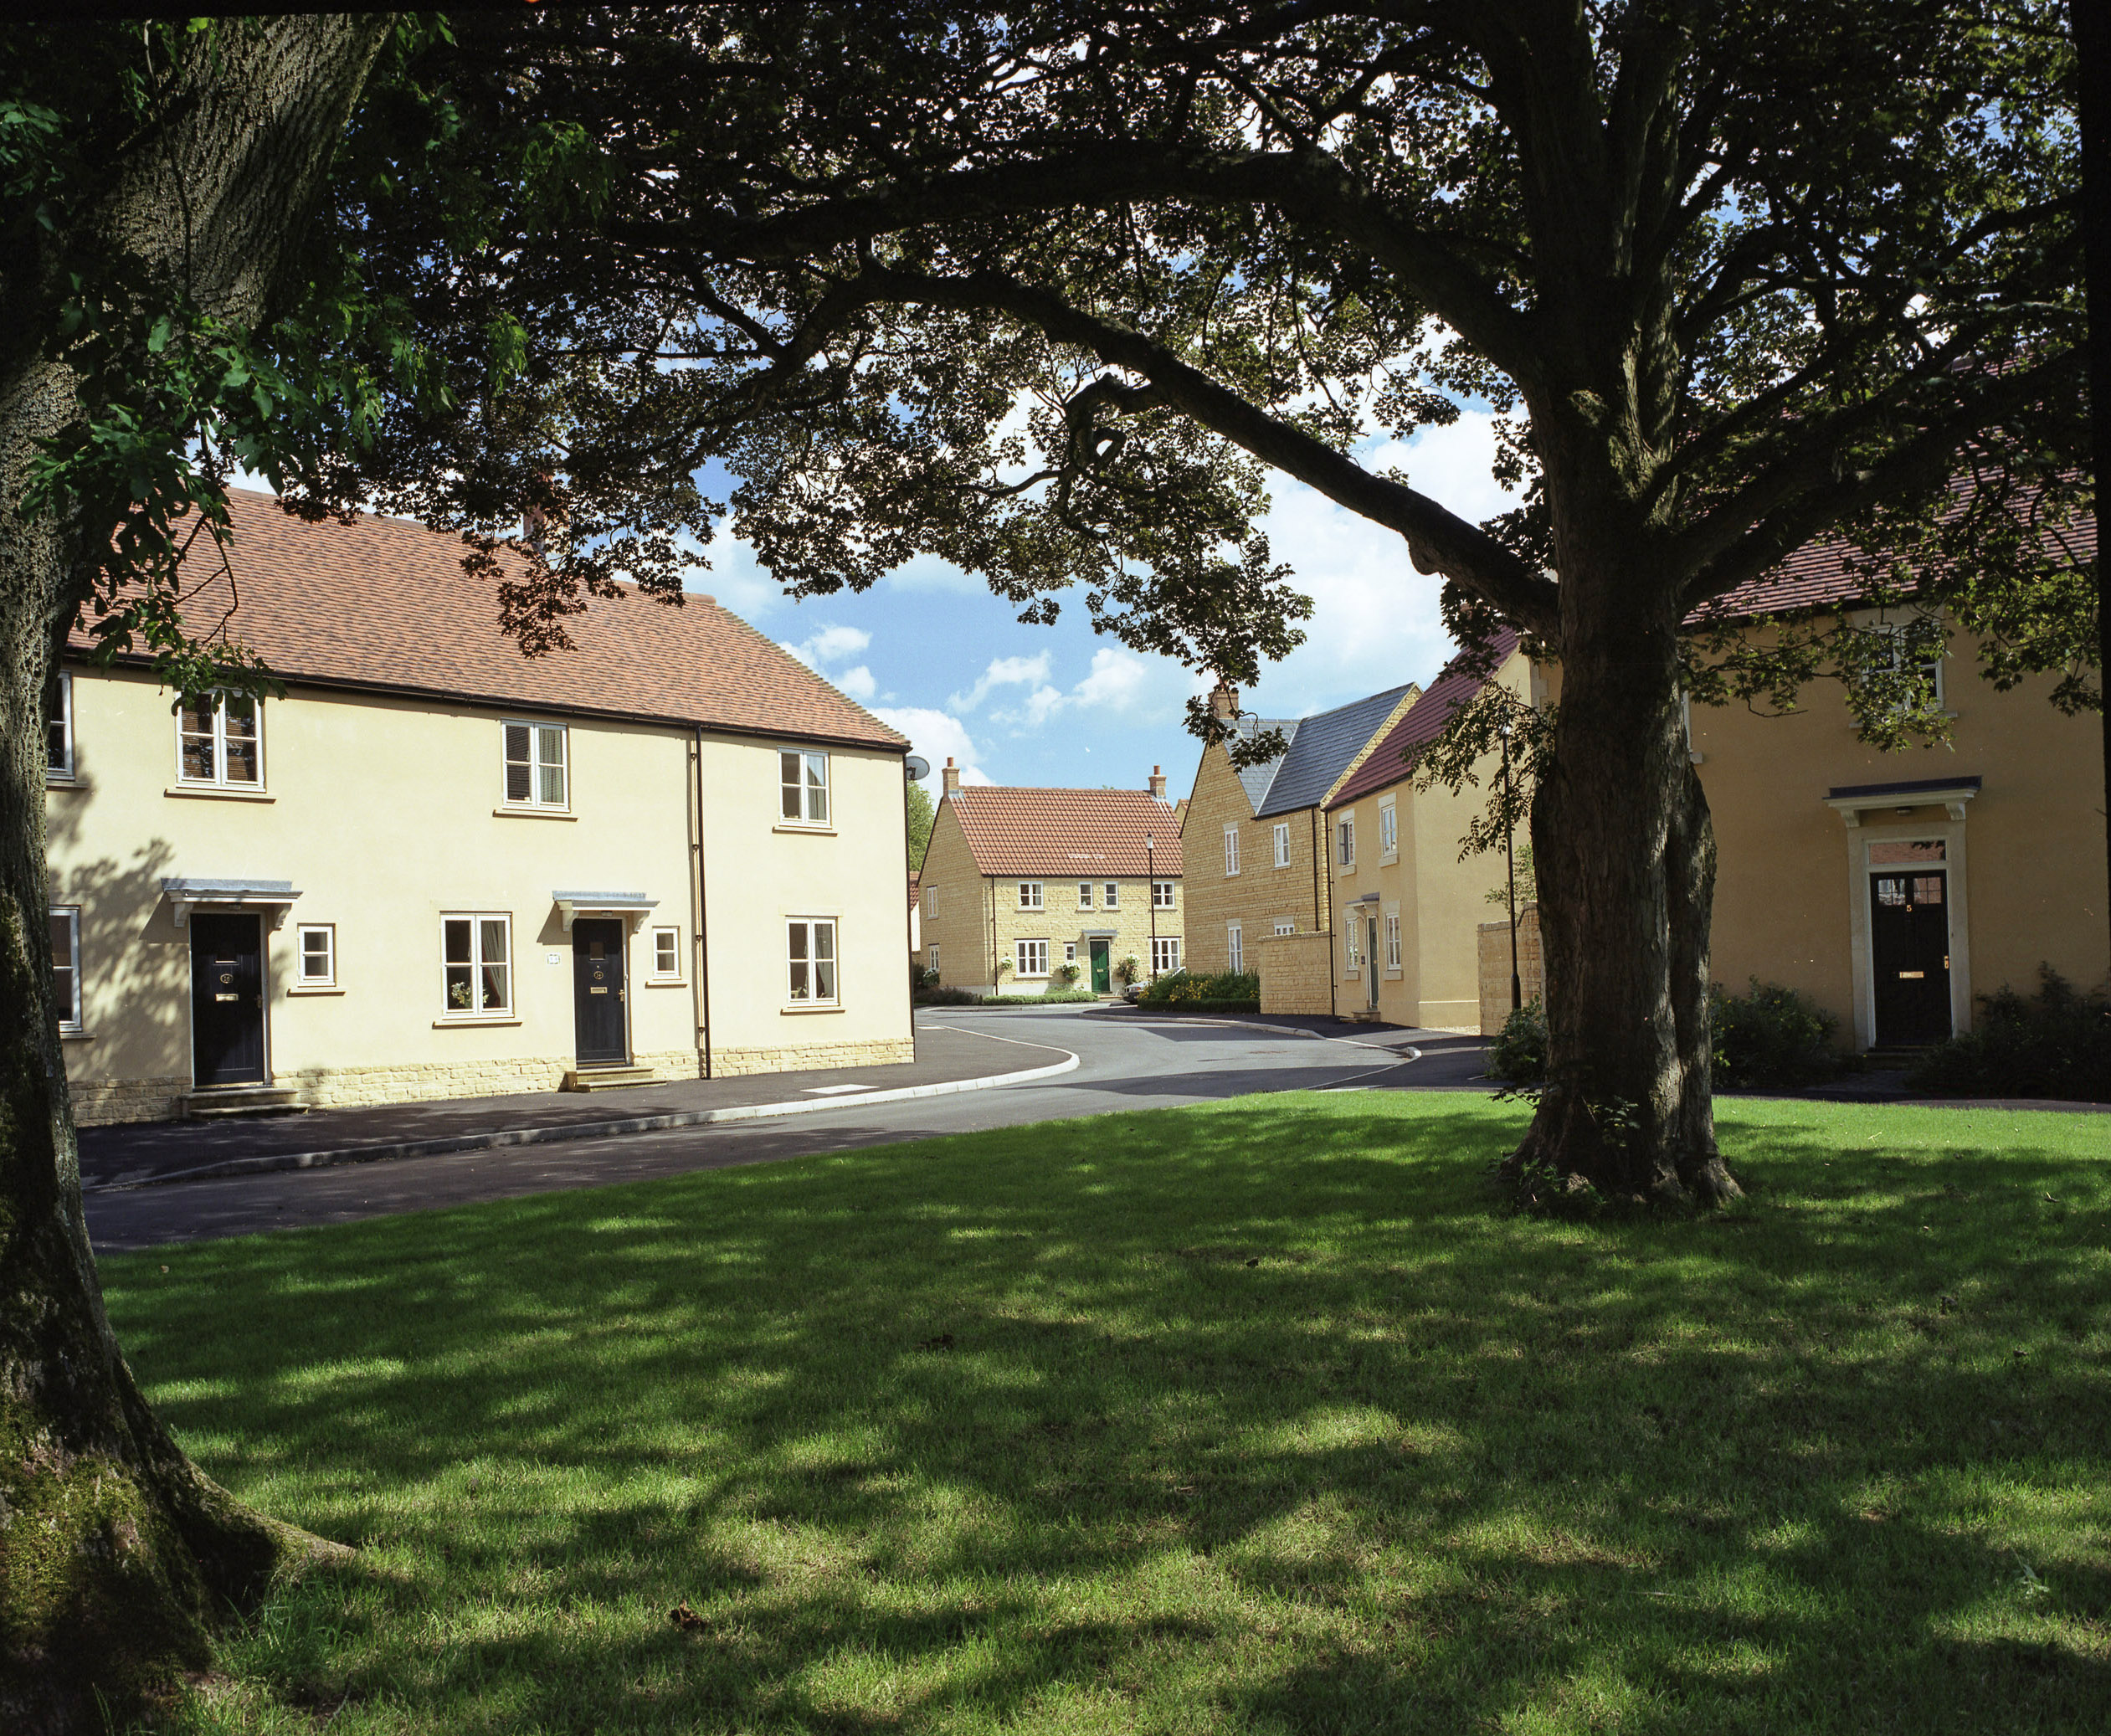 Field Farm, Shepton Mallet, Somerset